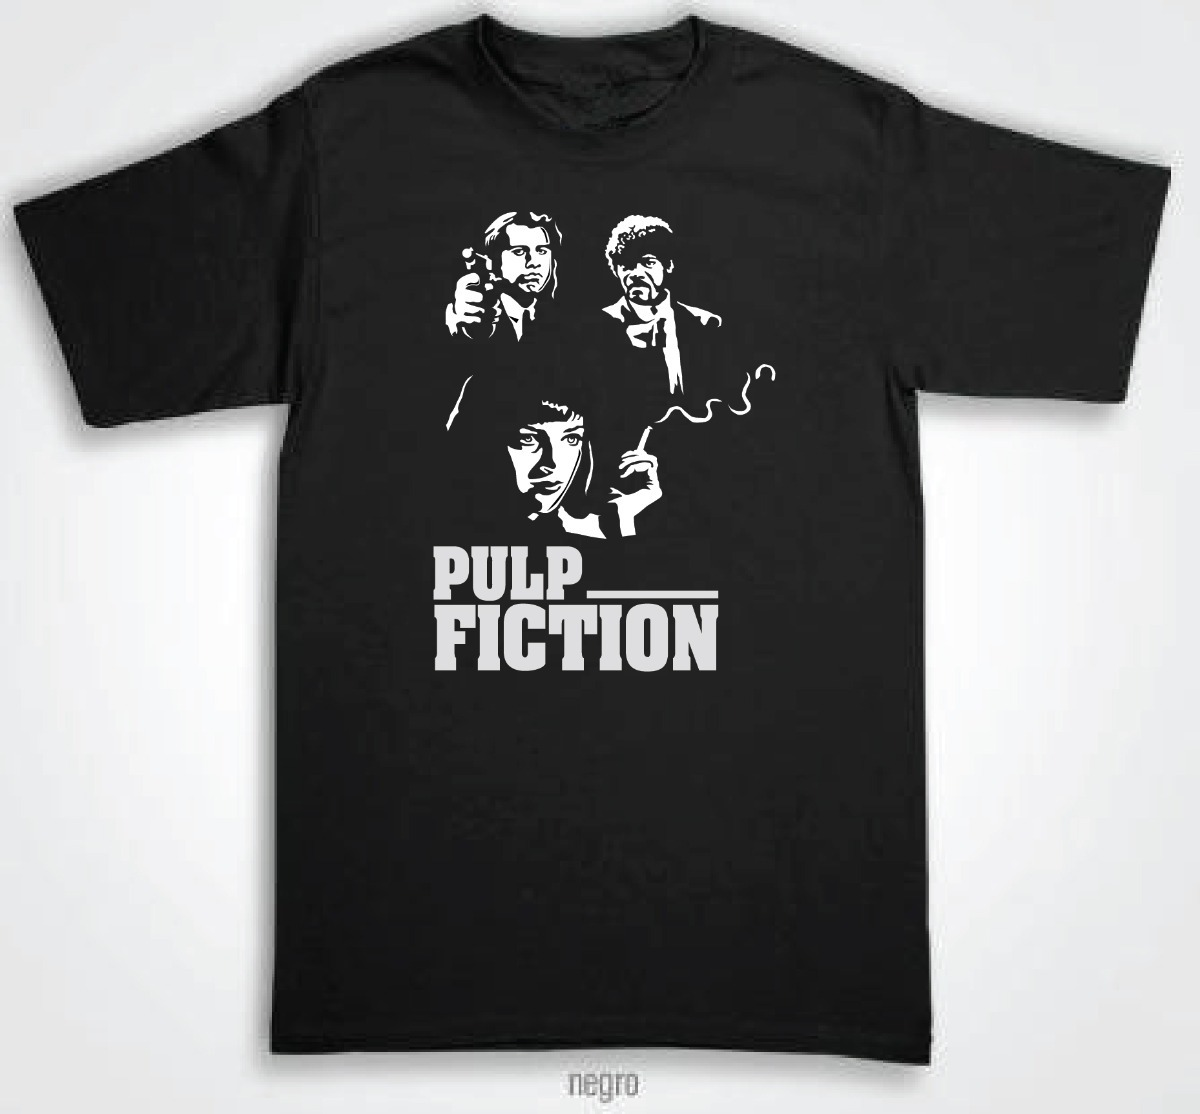 Pulp Fiction En Mercado Libre M Xico # Muebles Fiction